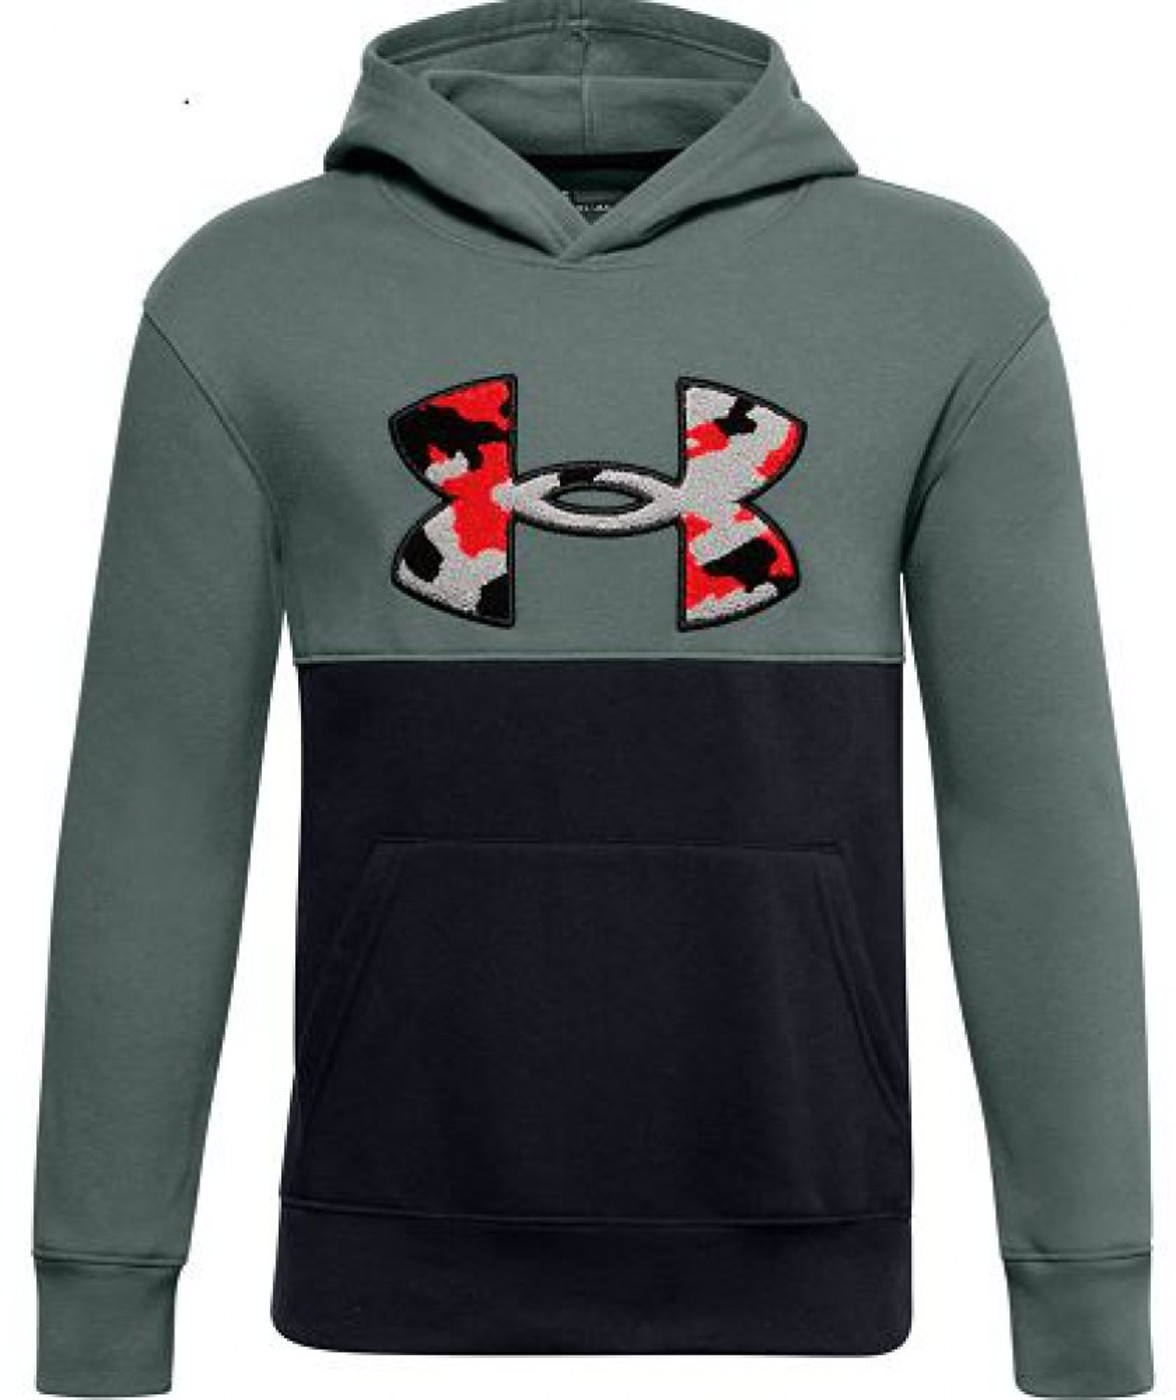 UNDER ARMOUR UA RIVAL FLEECE AMP HOODIE - Kinder